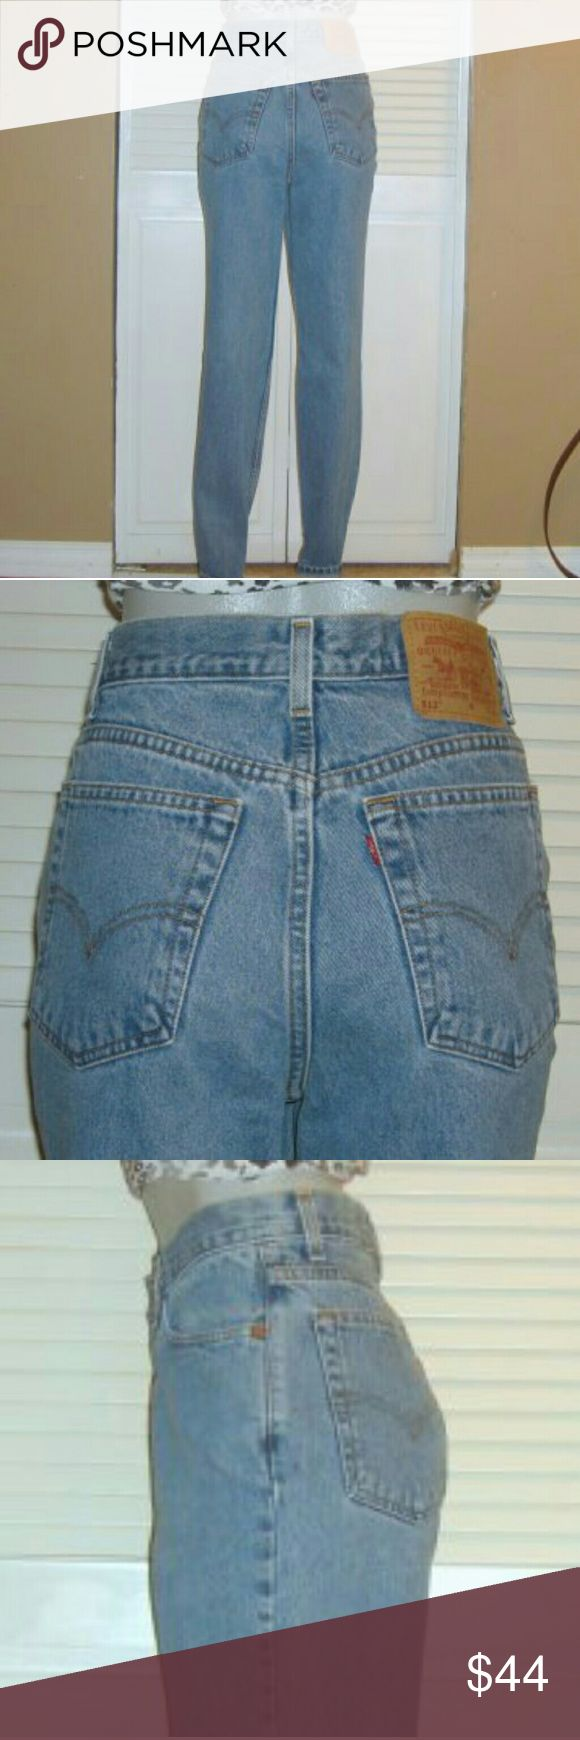 """Vintage Levis 512 High Waist Slim Tapered Jeans This pair of Vintage Levi's Jeans are 32"""" around the waist, 42"""" around the hips, have a 12 1/2"""" rise and a 30 1/2"""" inseam. Levi's Jeans Straight Leg"""